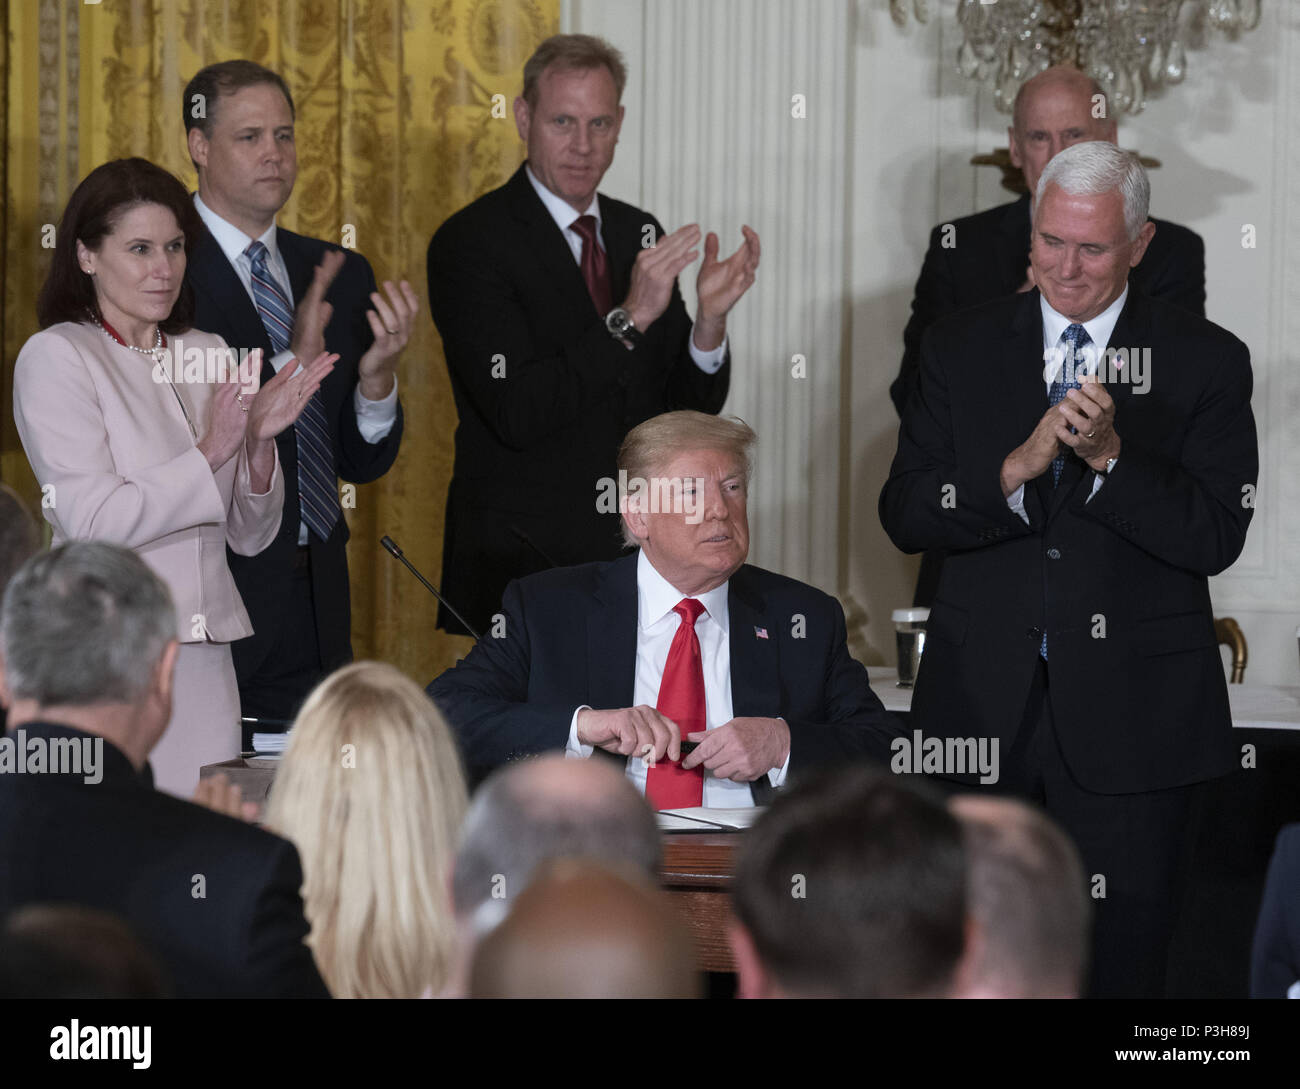 Washington, District of Columbia, USA. 18th June, 2018. United States President Donald J. Trump signs Space Policy Directive 3 during a meeting of the National Space Council at The White House in Washington, DC, June 18, 2018. The directive addresses issues including monitoring of objects in orbit, providing that information to spacecraft operators to avoid collisions, and to limit the growth of orbital debris. Chris Kleponis/CNP Credit: Chris Kleponis/CNP/ZUMA Wire/Alamy Live News - Stock Image